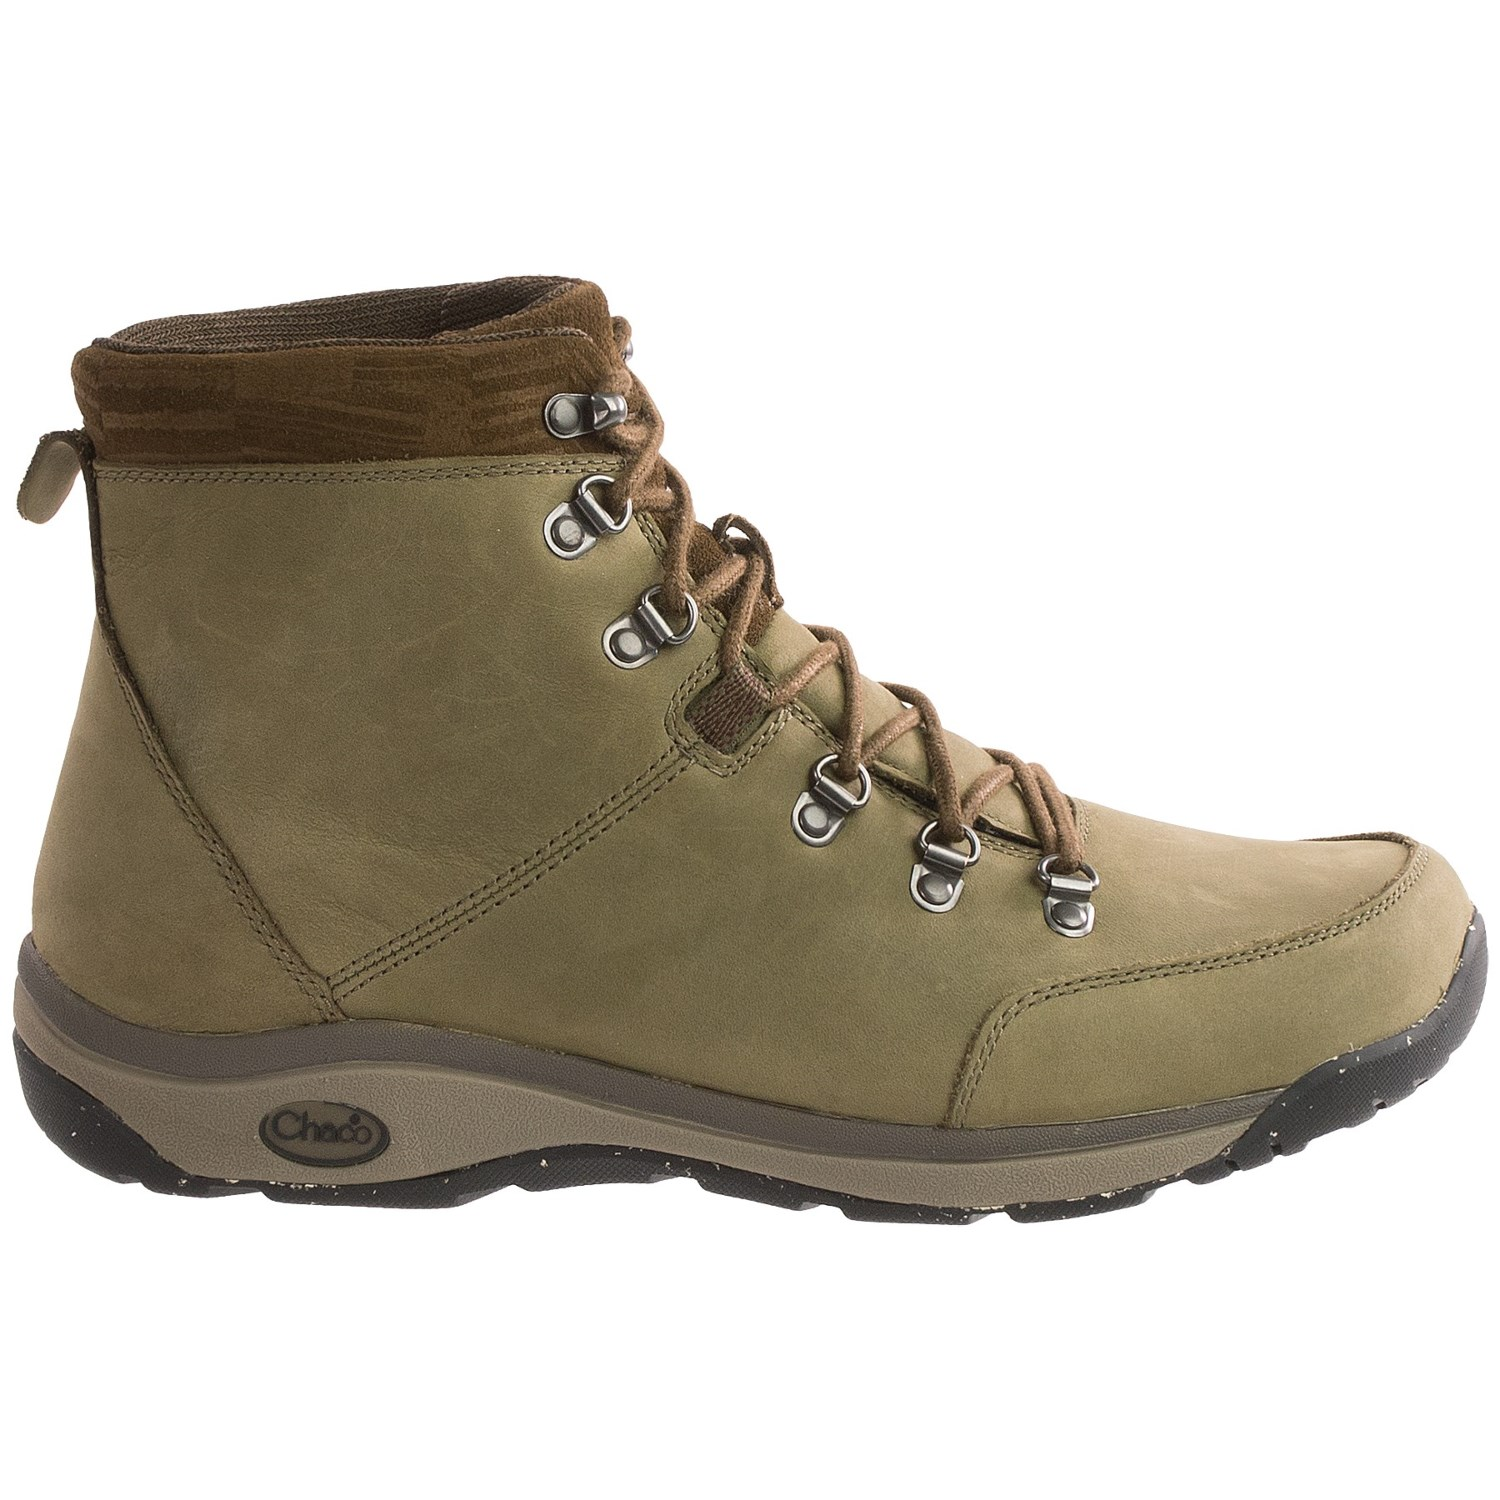 chaco roland boots for save 70